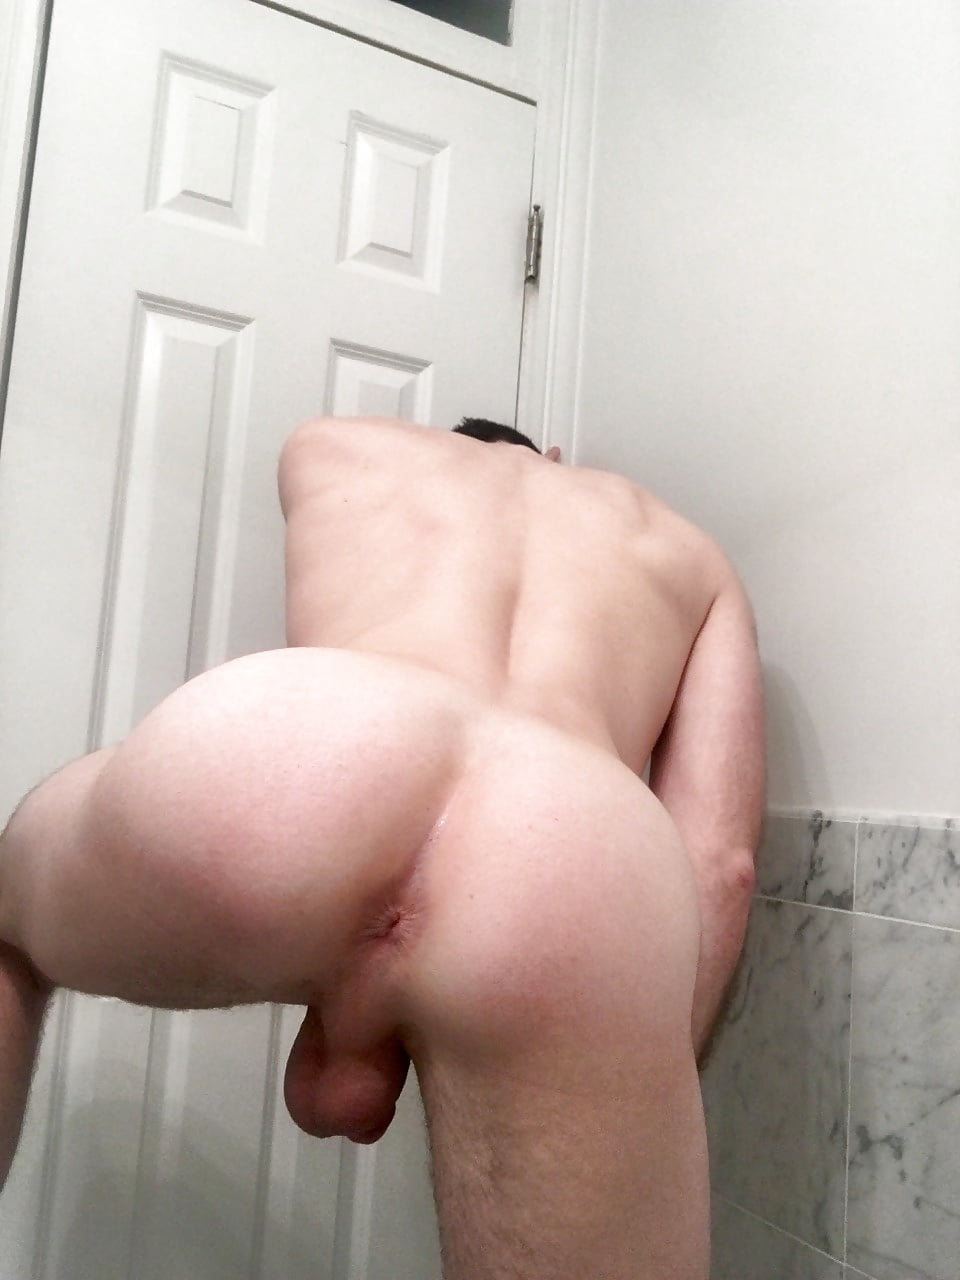 penis-naked-bubble-butt-twinks